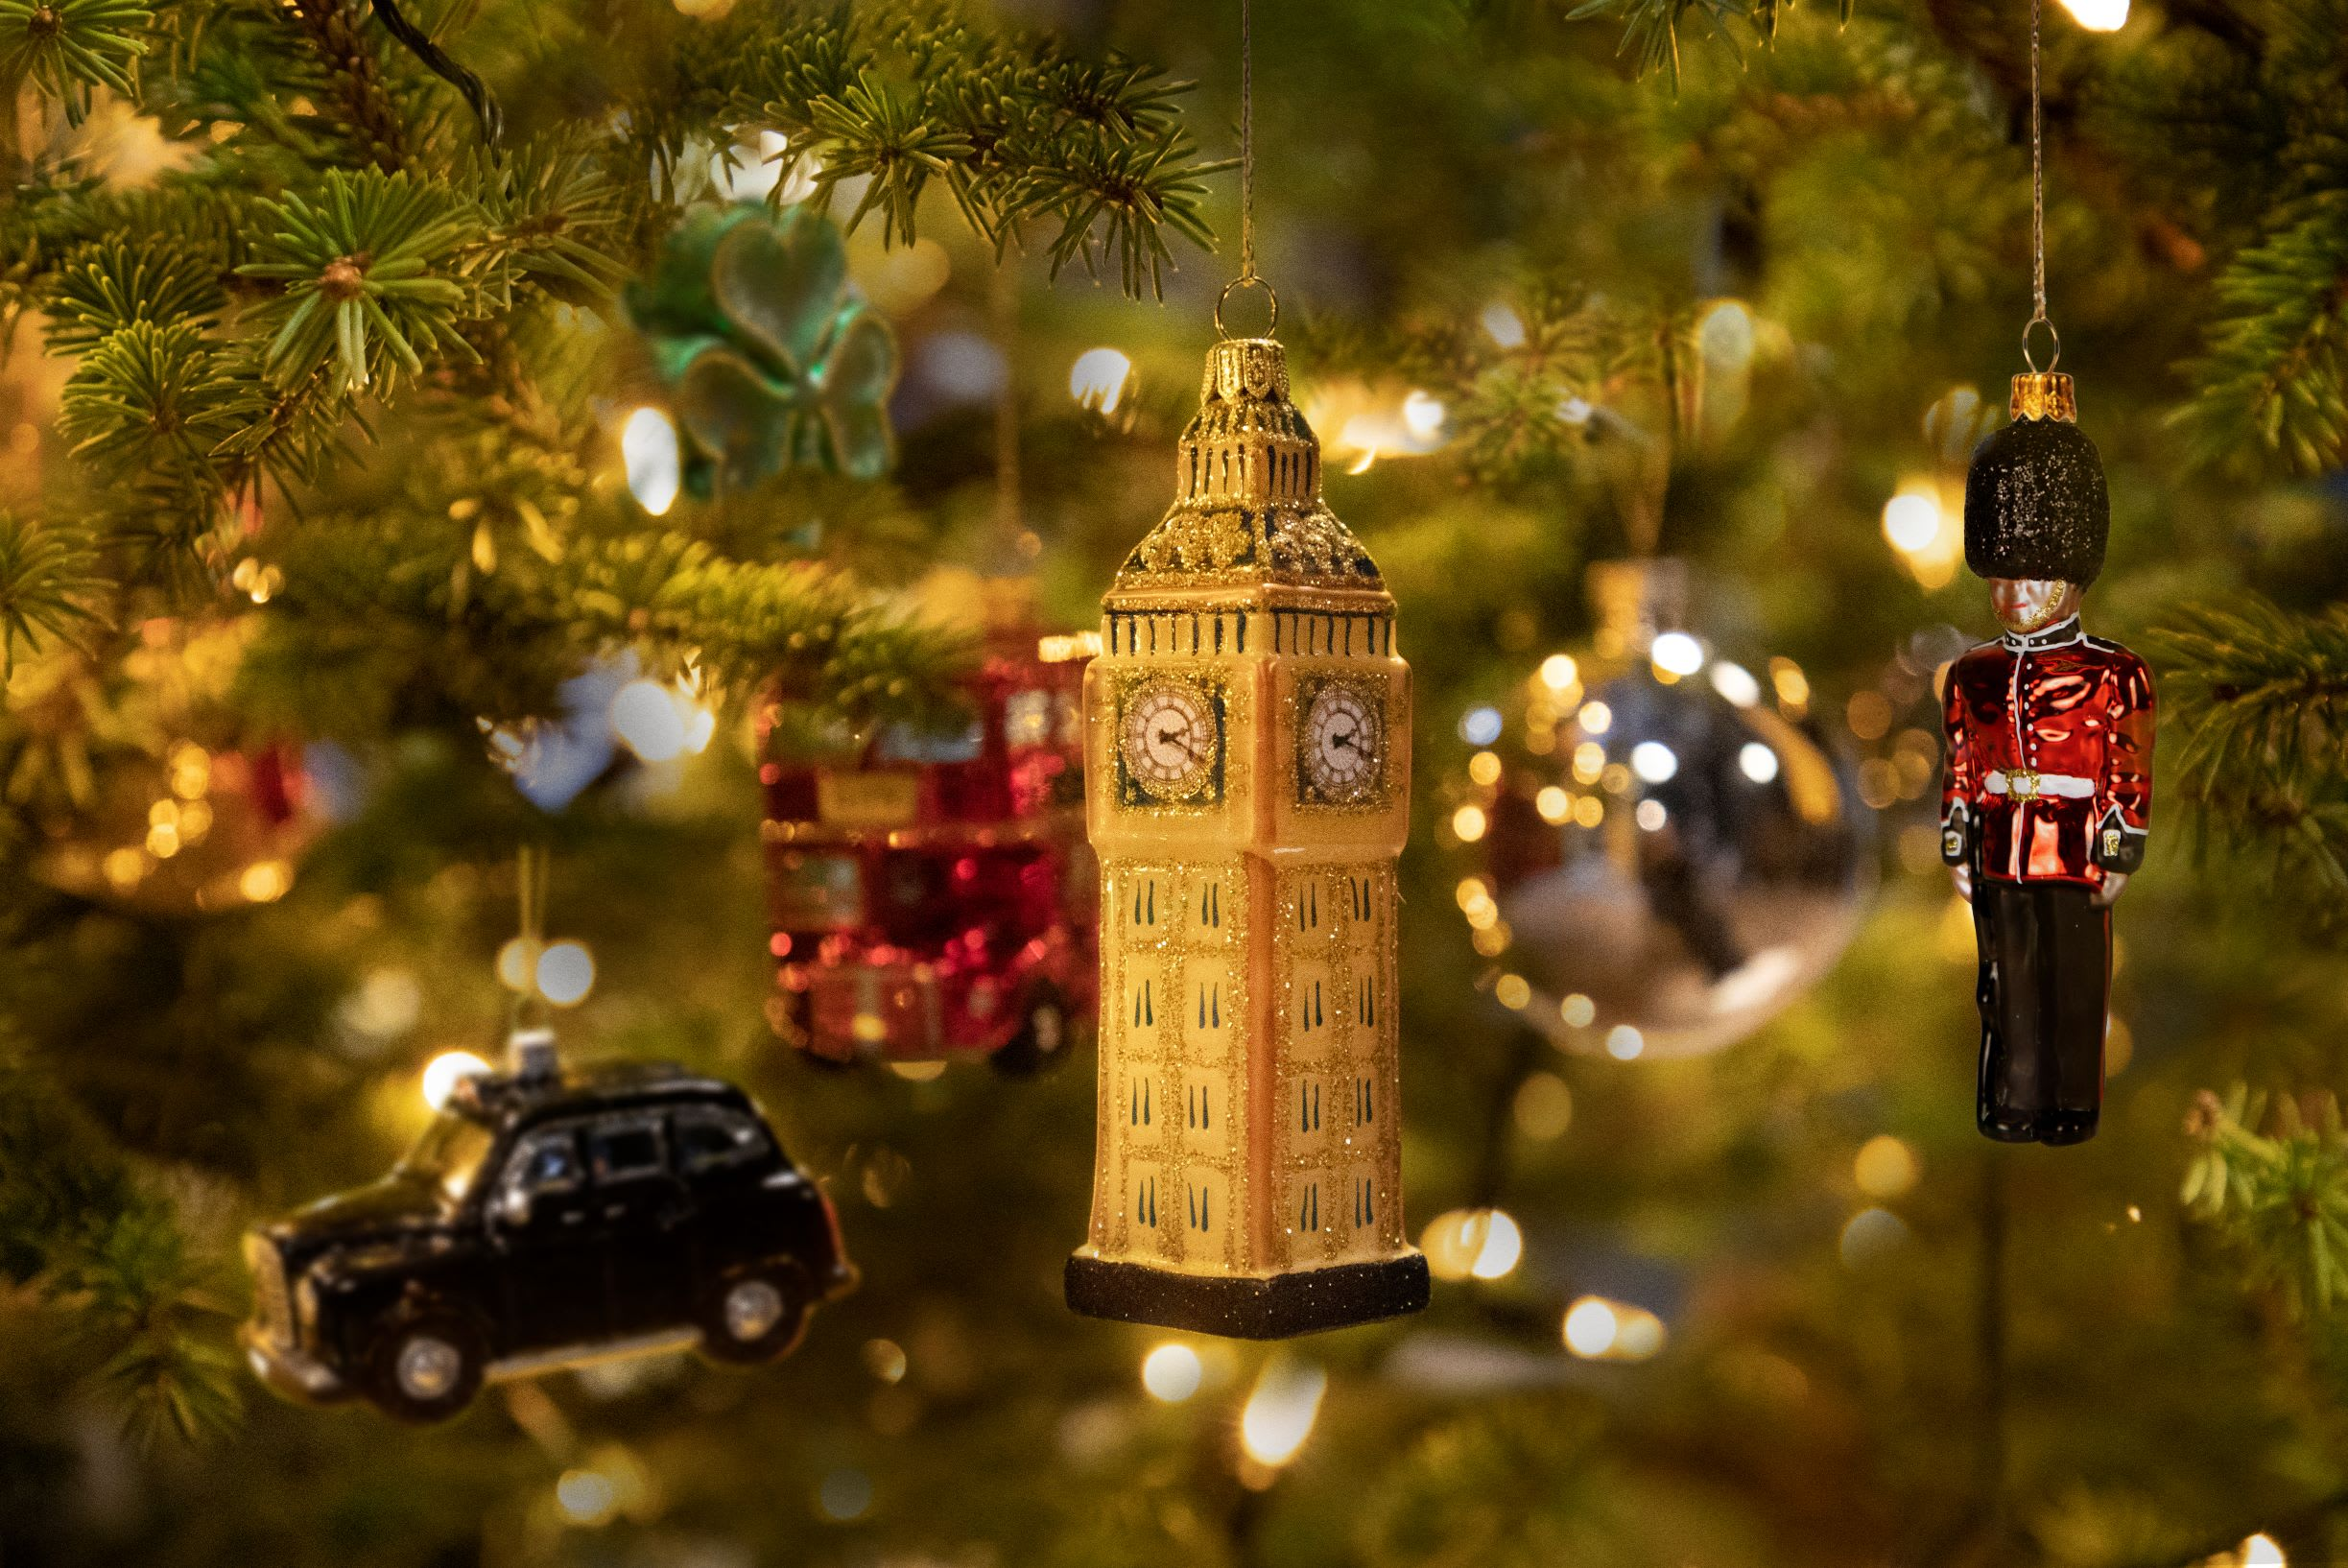 an up close Christmas tree with British themed decorations including Bi9g Ben, a black cab and a Queen's guard